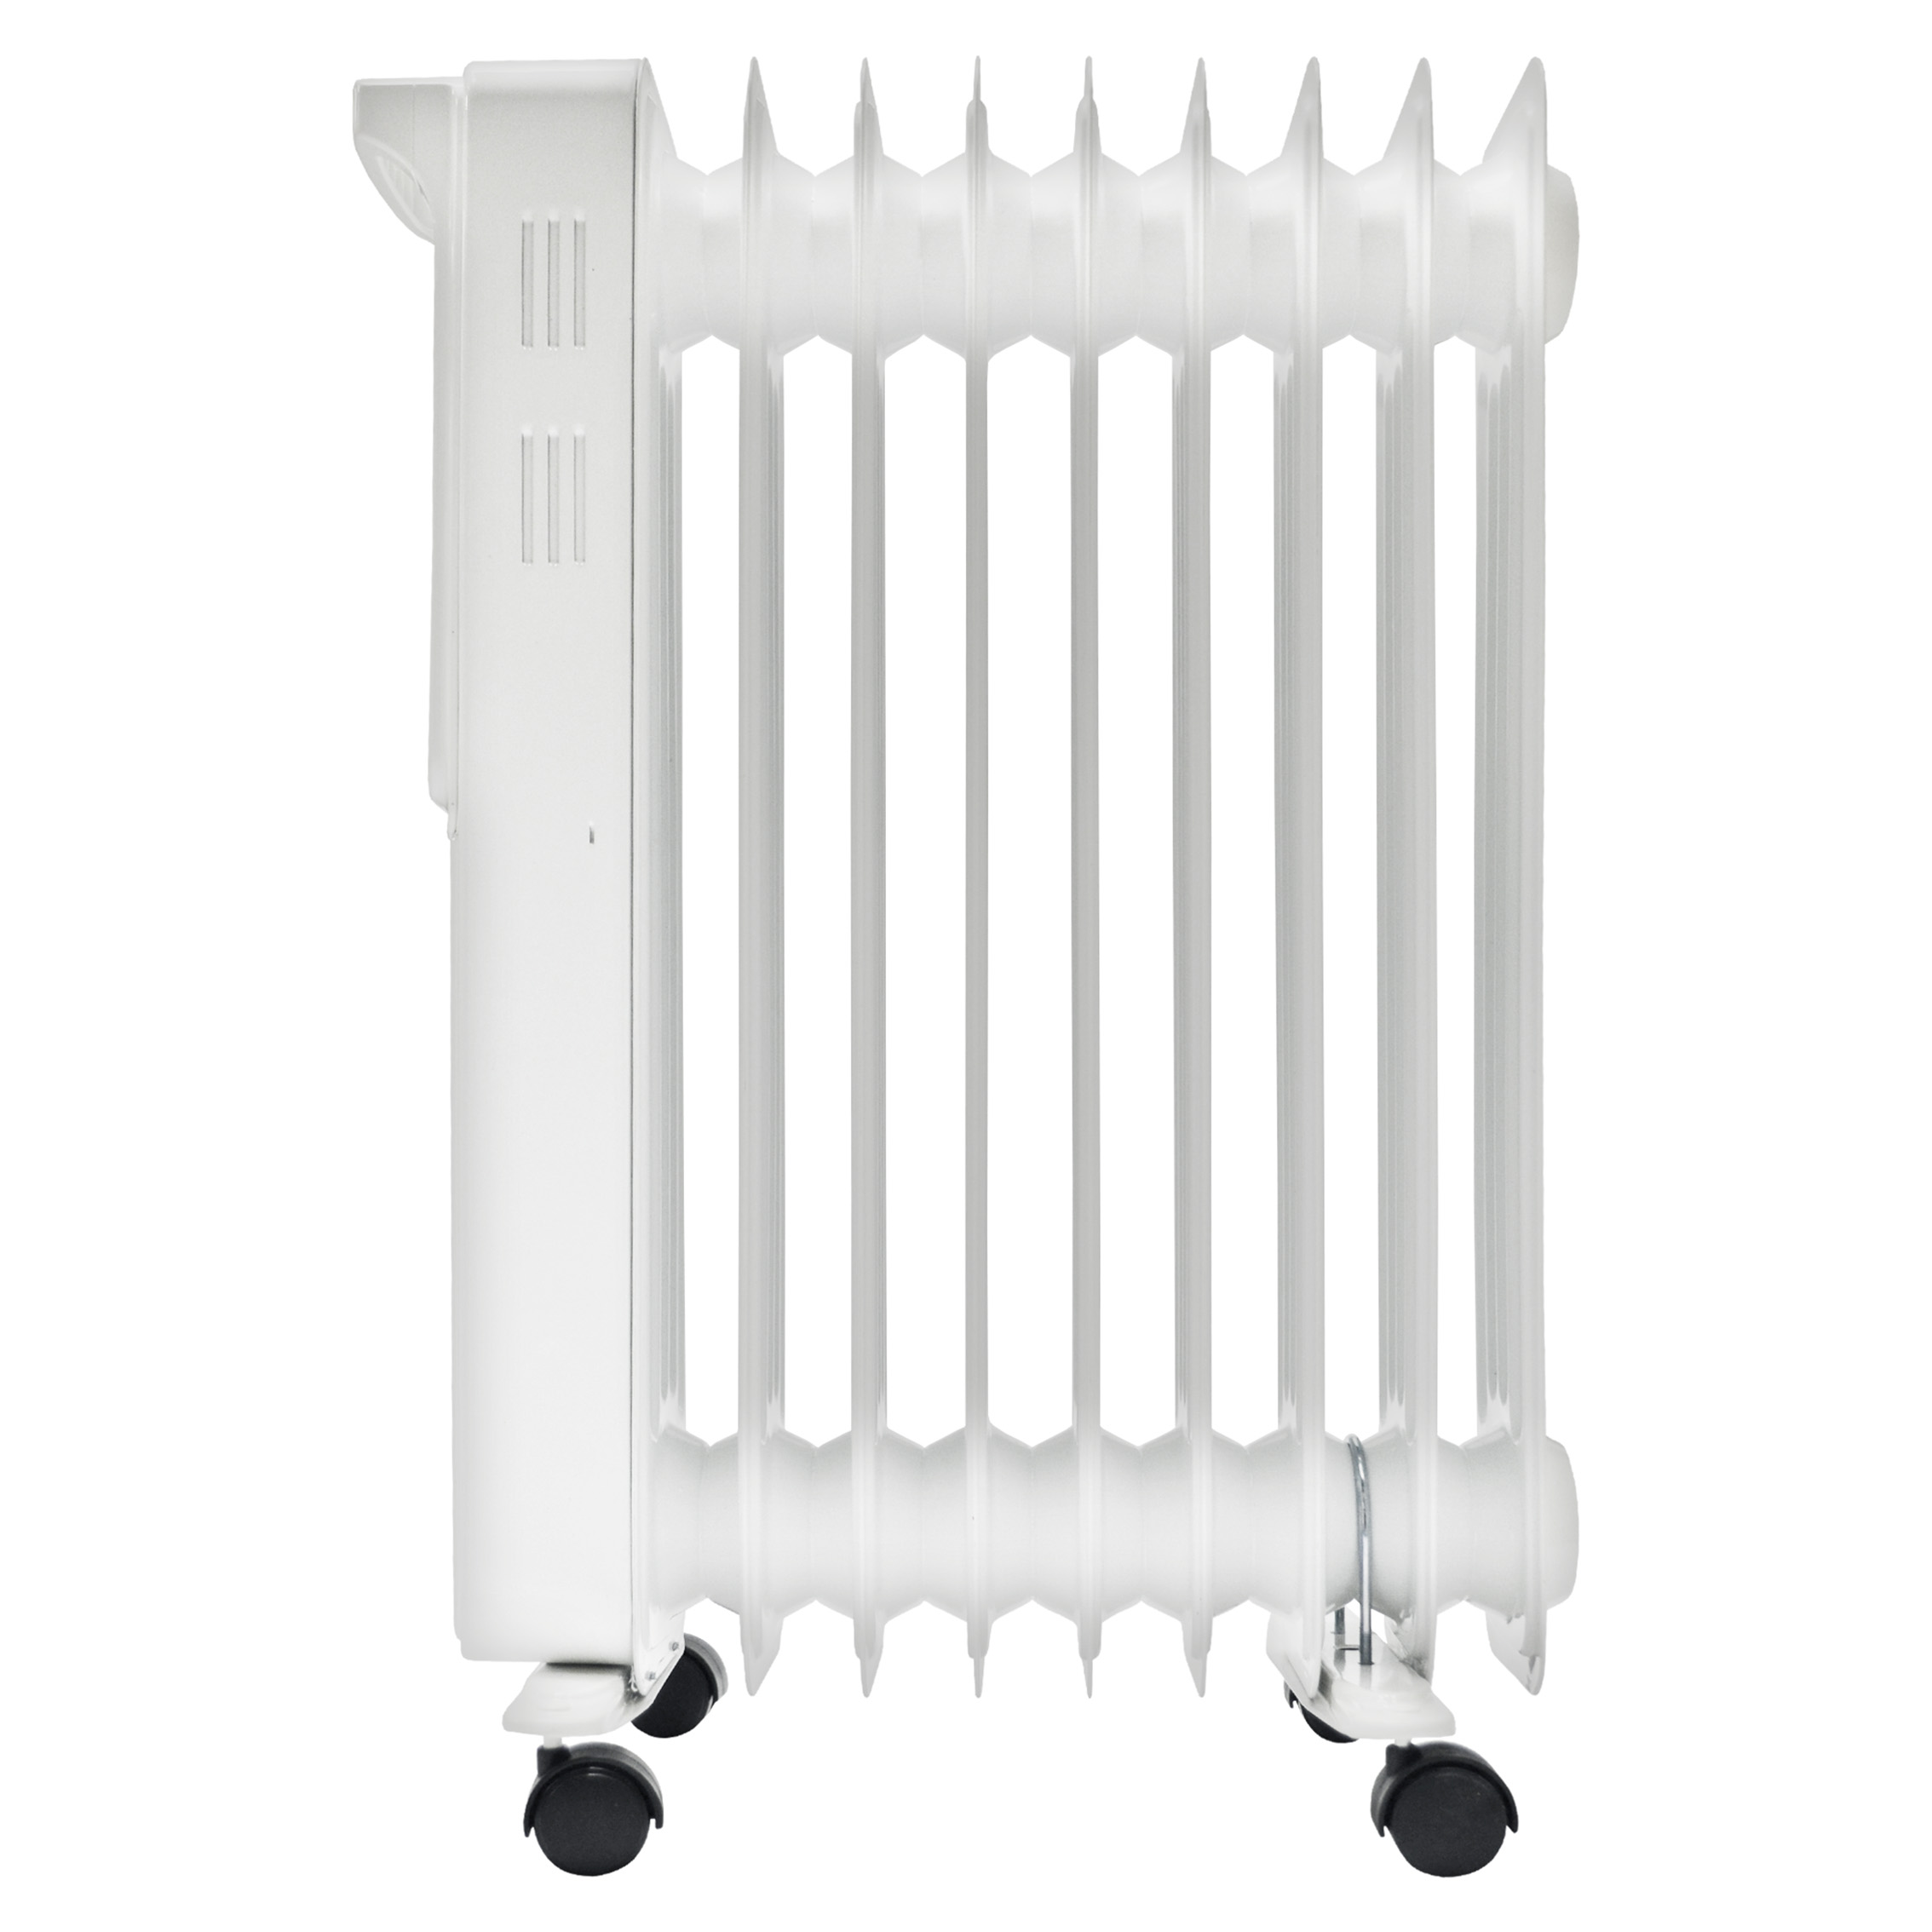 Igenix 2kW Digital Oil Filled Radiator White Ref IG2610